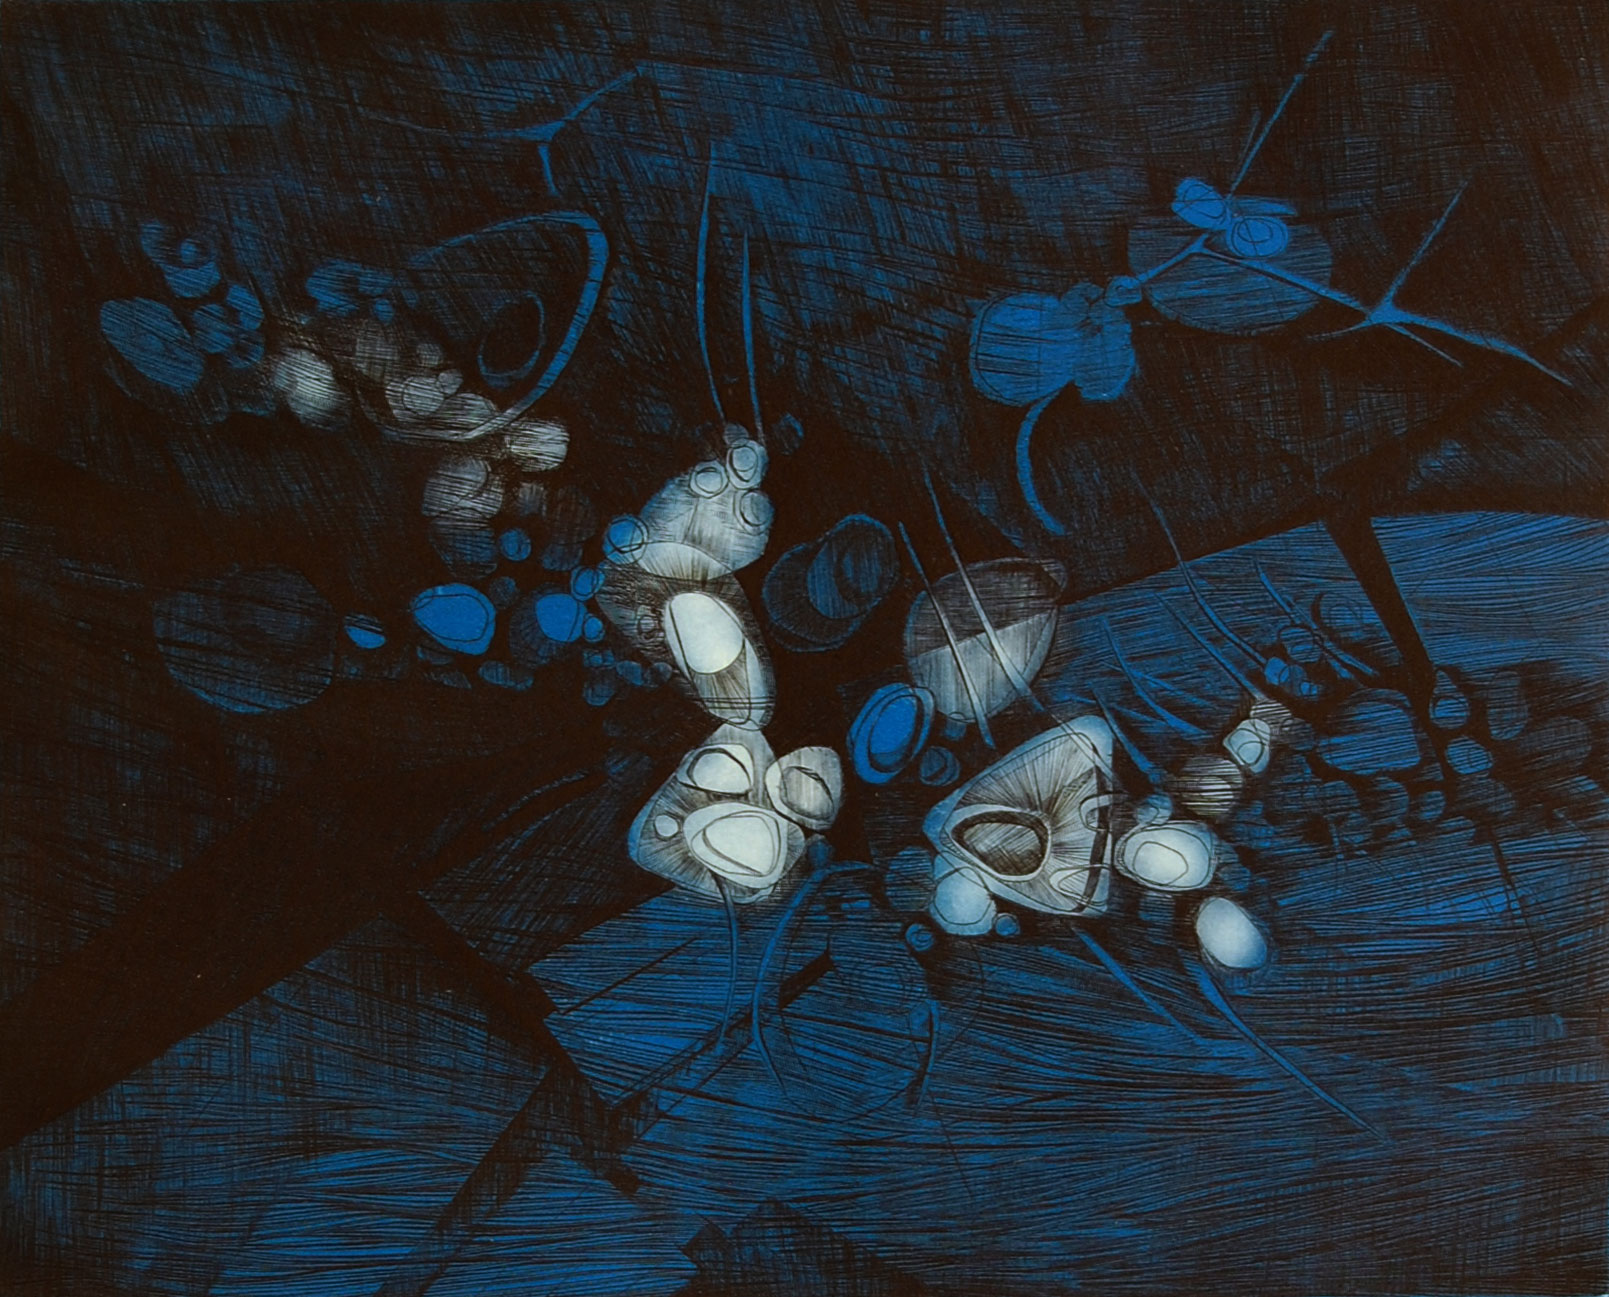 Anne Breivik – Night flowers, dyptrykk, 35,5 x 28,5 cm